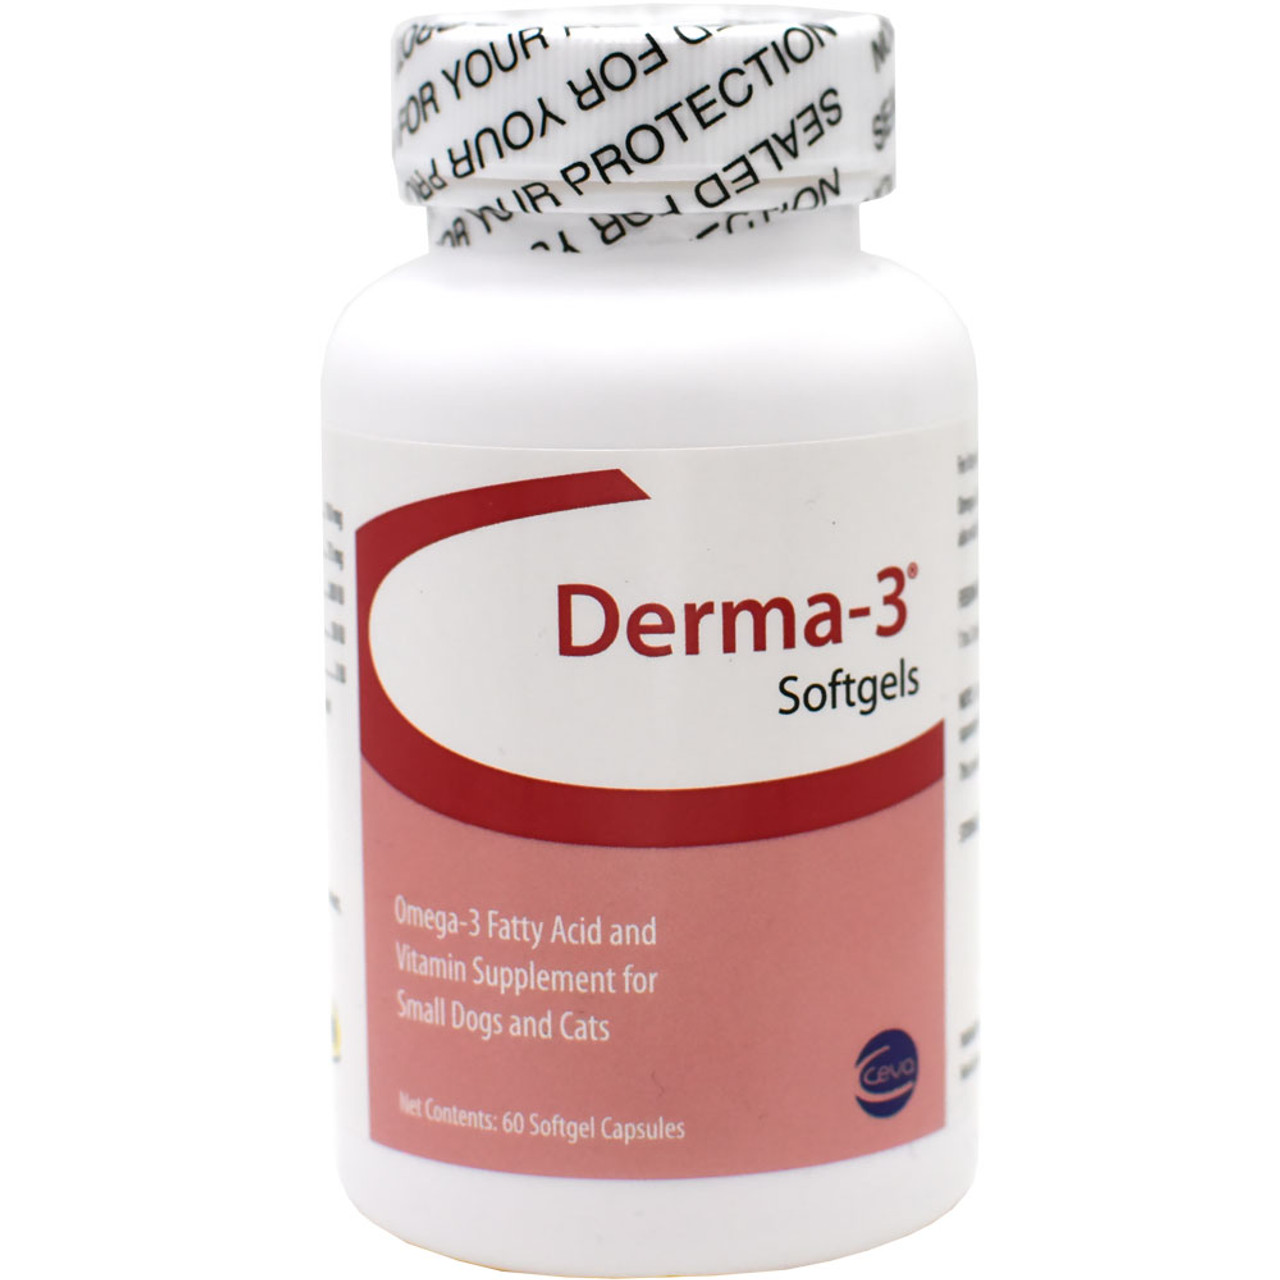 Derma -3 Softgels for Small Dogs and Cats